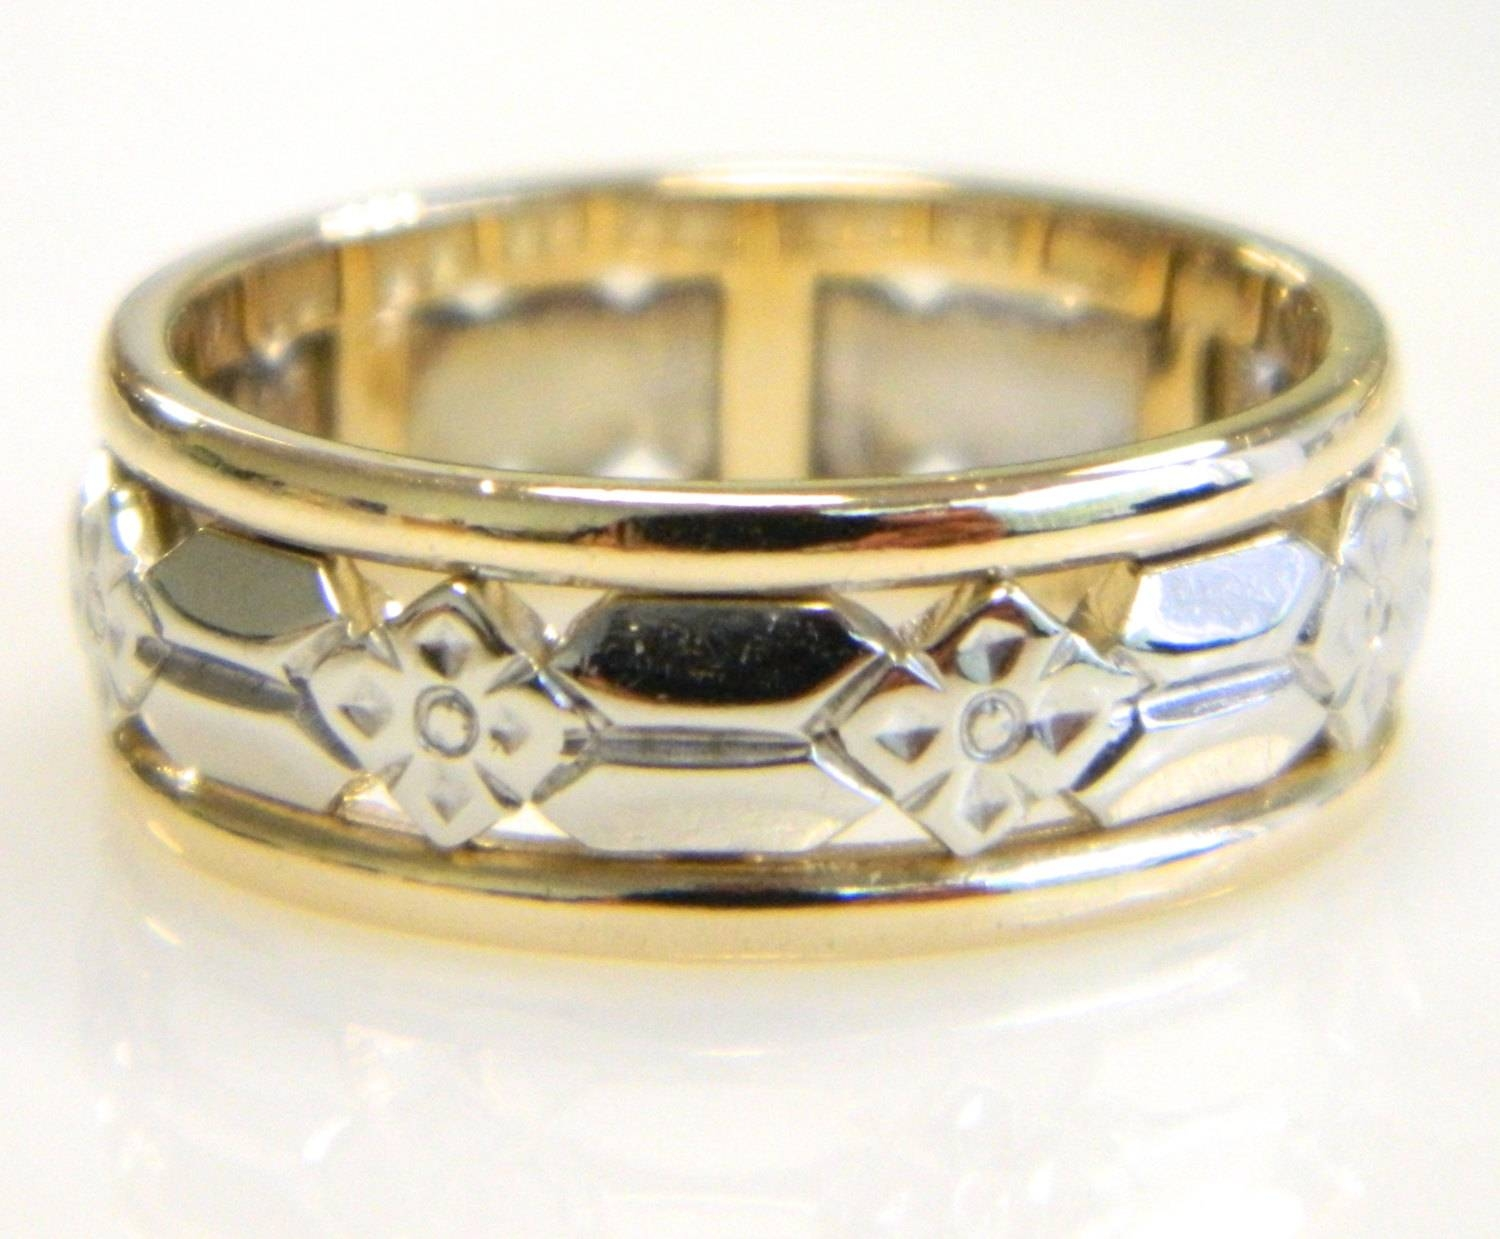 Vintage 14K Artcarved Two Tone Gold Wedding Band With Art Carved Wedding Bands (View 14 of 15)